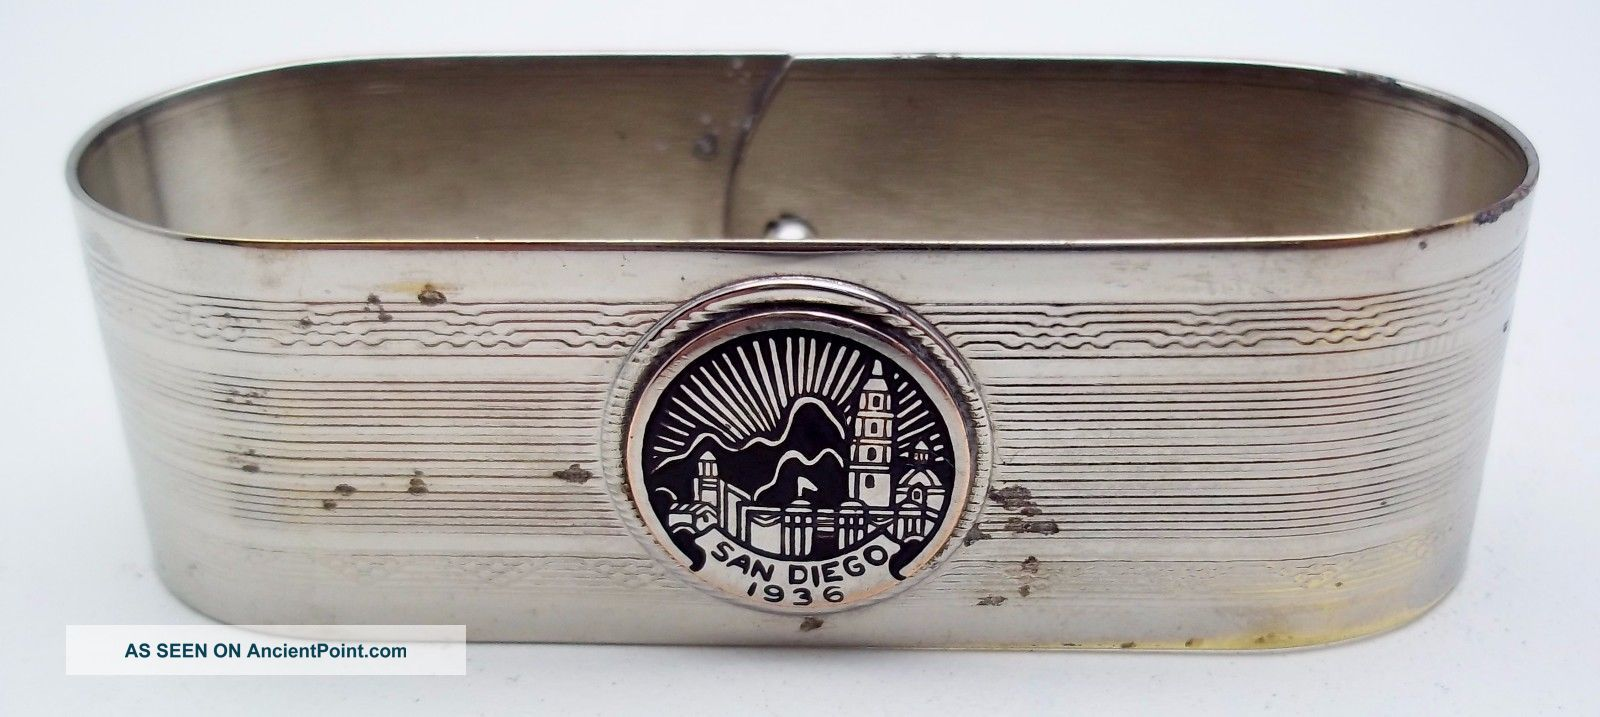 Antique San Diego Silver Plate Napkin Ring 1936 Napkin Rings & Clips photo